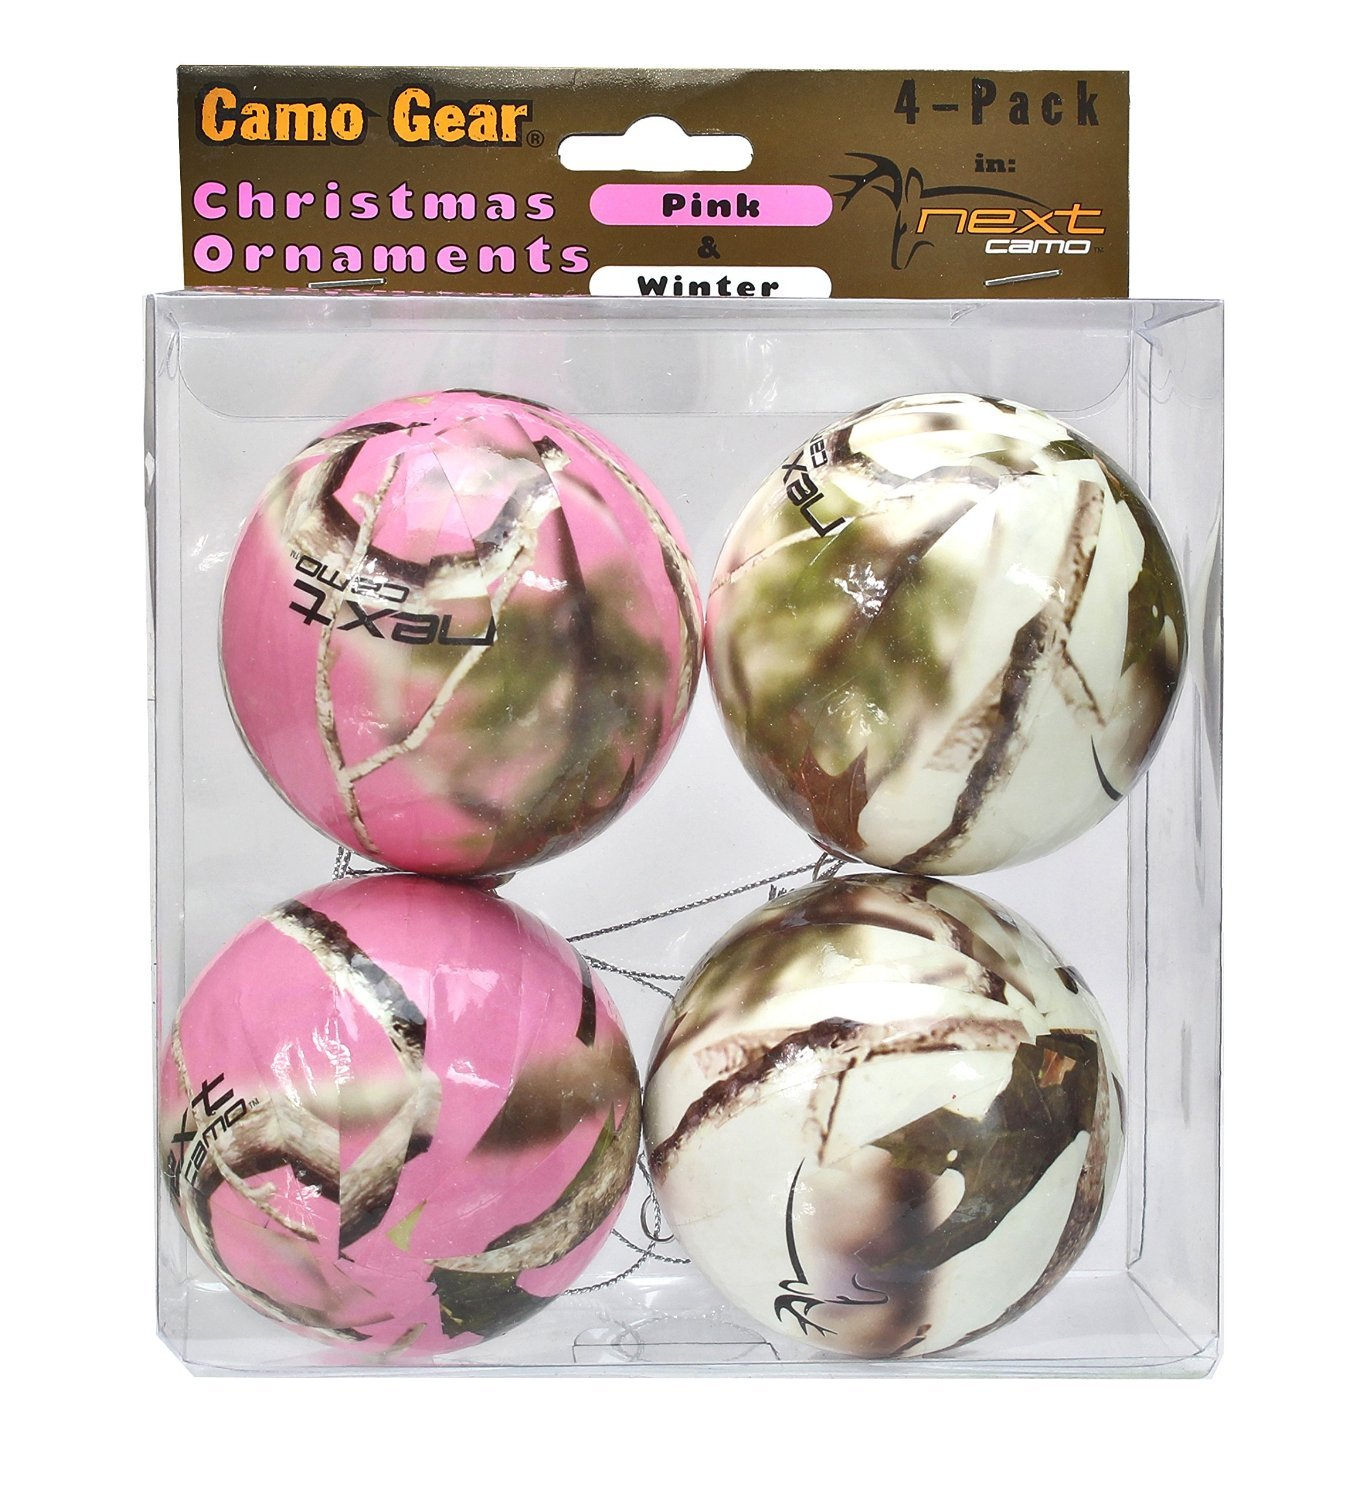 Superior Pink Camo Christmas Ornaments Part - 8: Buy Realtree Camo Christmas Ornaments Pink U0026 White 8 Pk Camouflage Online  At Low Prices In India - Amazon.in